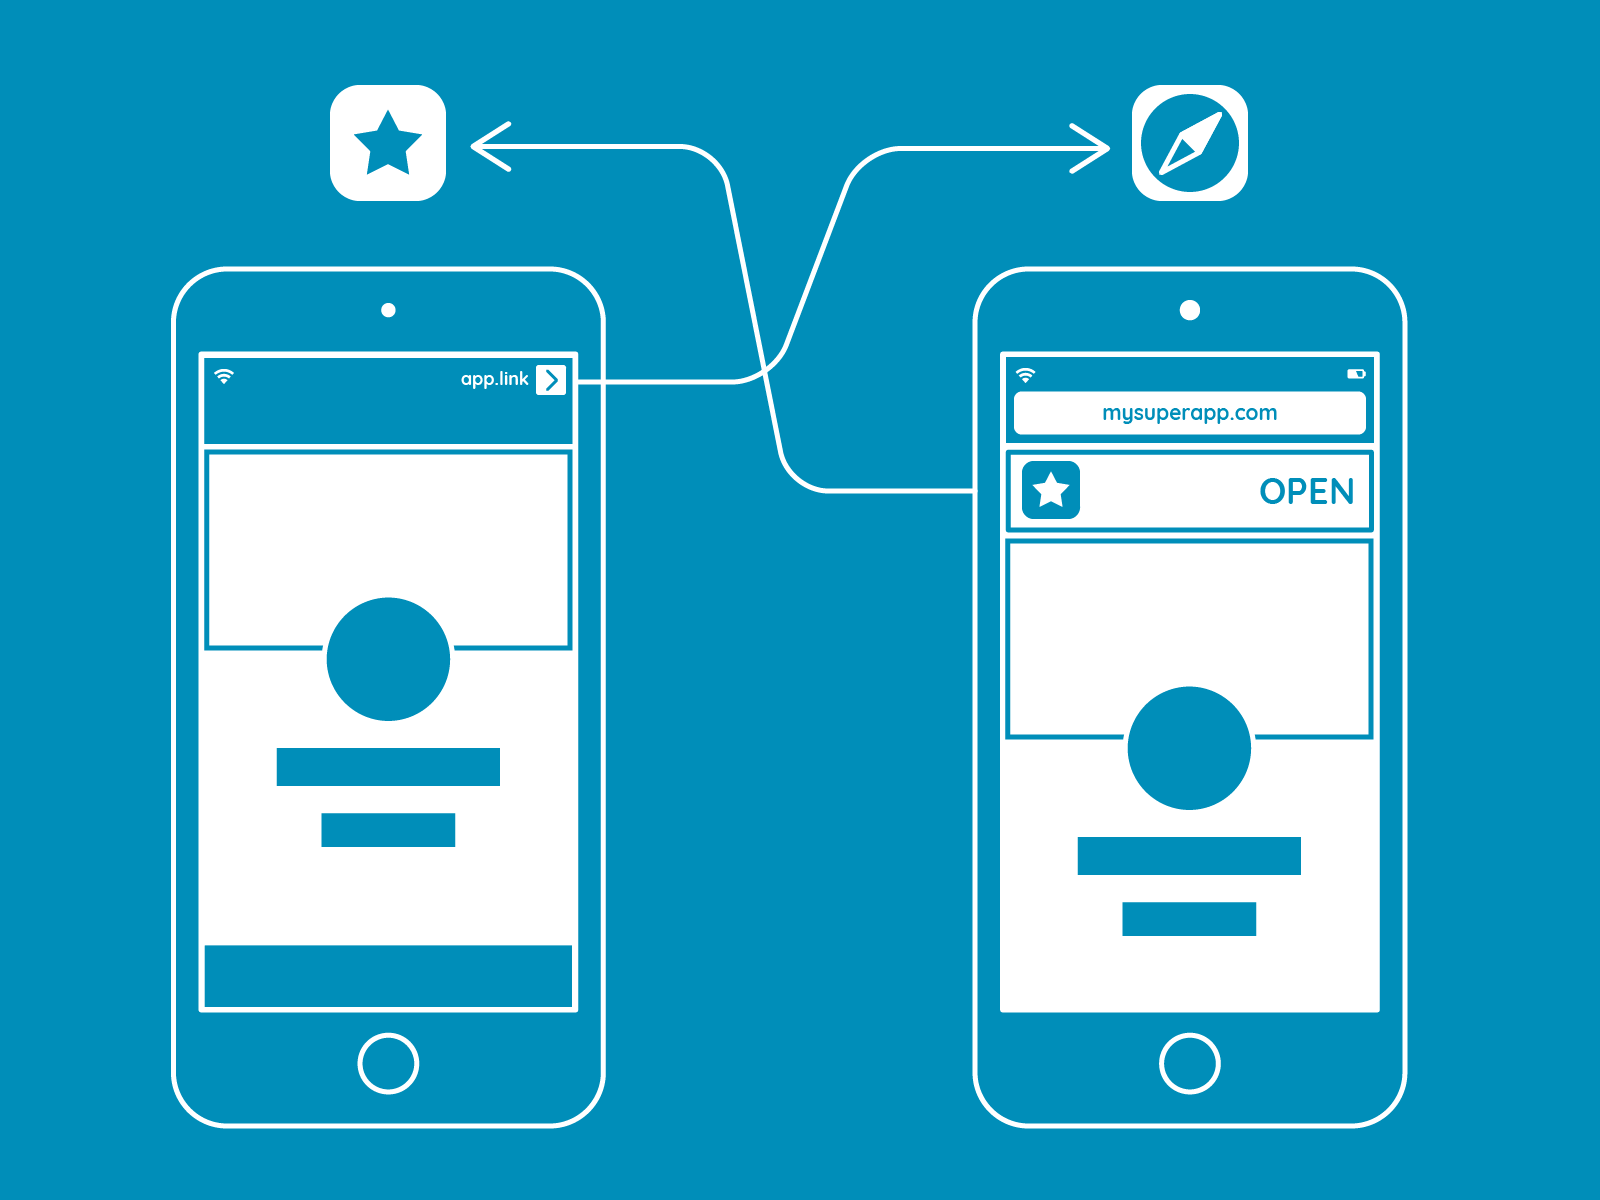 Getting deeper with deep linking on iOS - Undabot